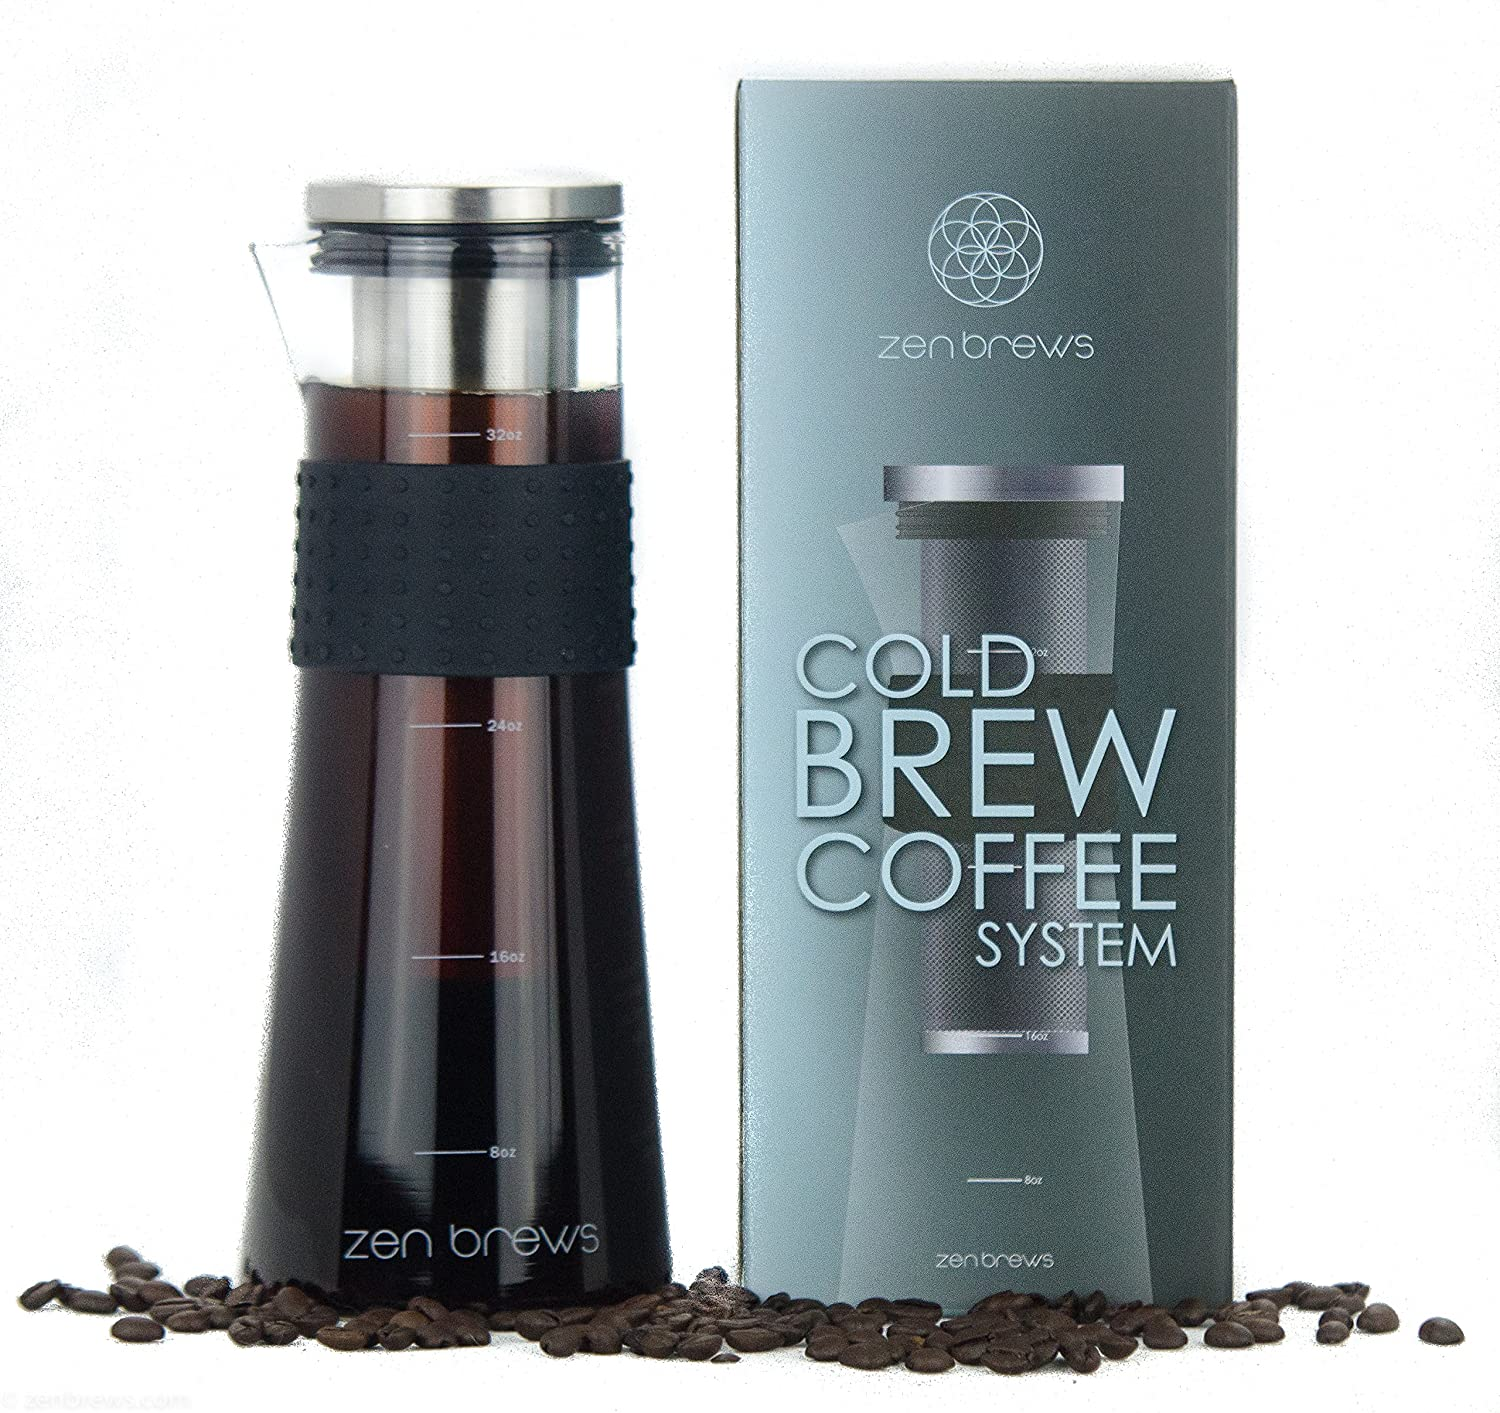 Cold Brew Coffee Maker by Zen Brews | Make Low Acidity - High Caffeine Cold Brew Coffee at Home | 32oz Glass Carafe w/Stainless Steel Filter + Extra Gasket | Silicone Grip | FREE e-Recipe Book